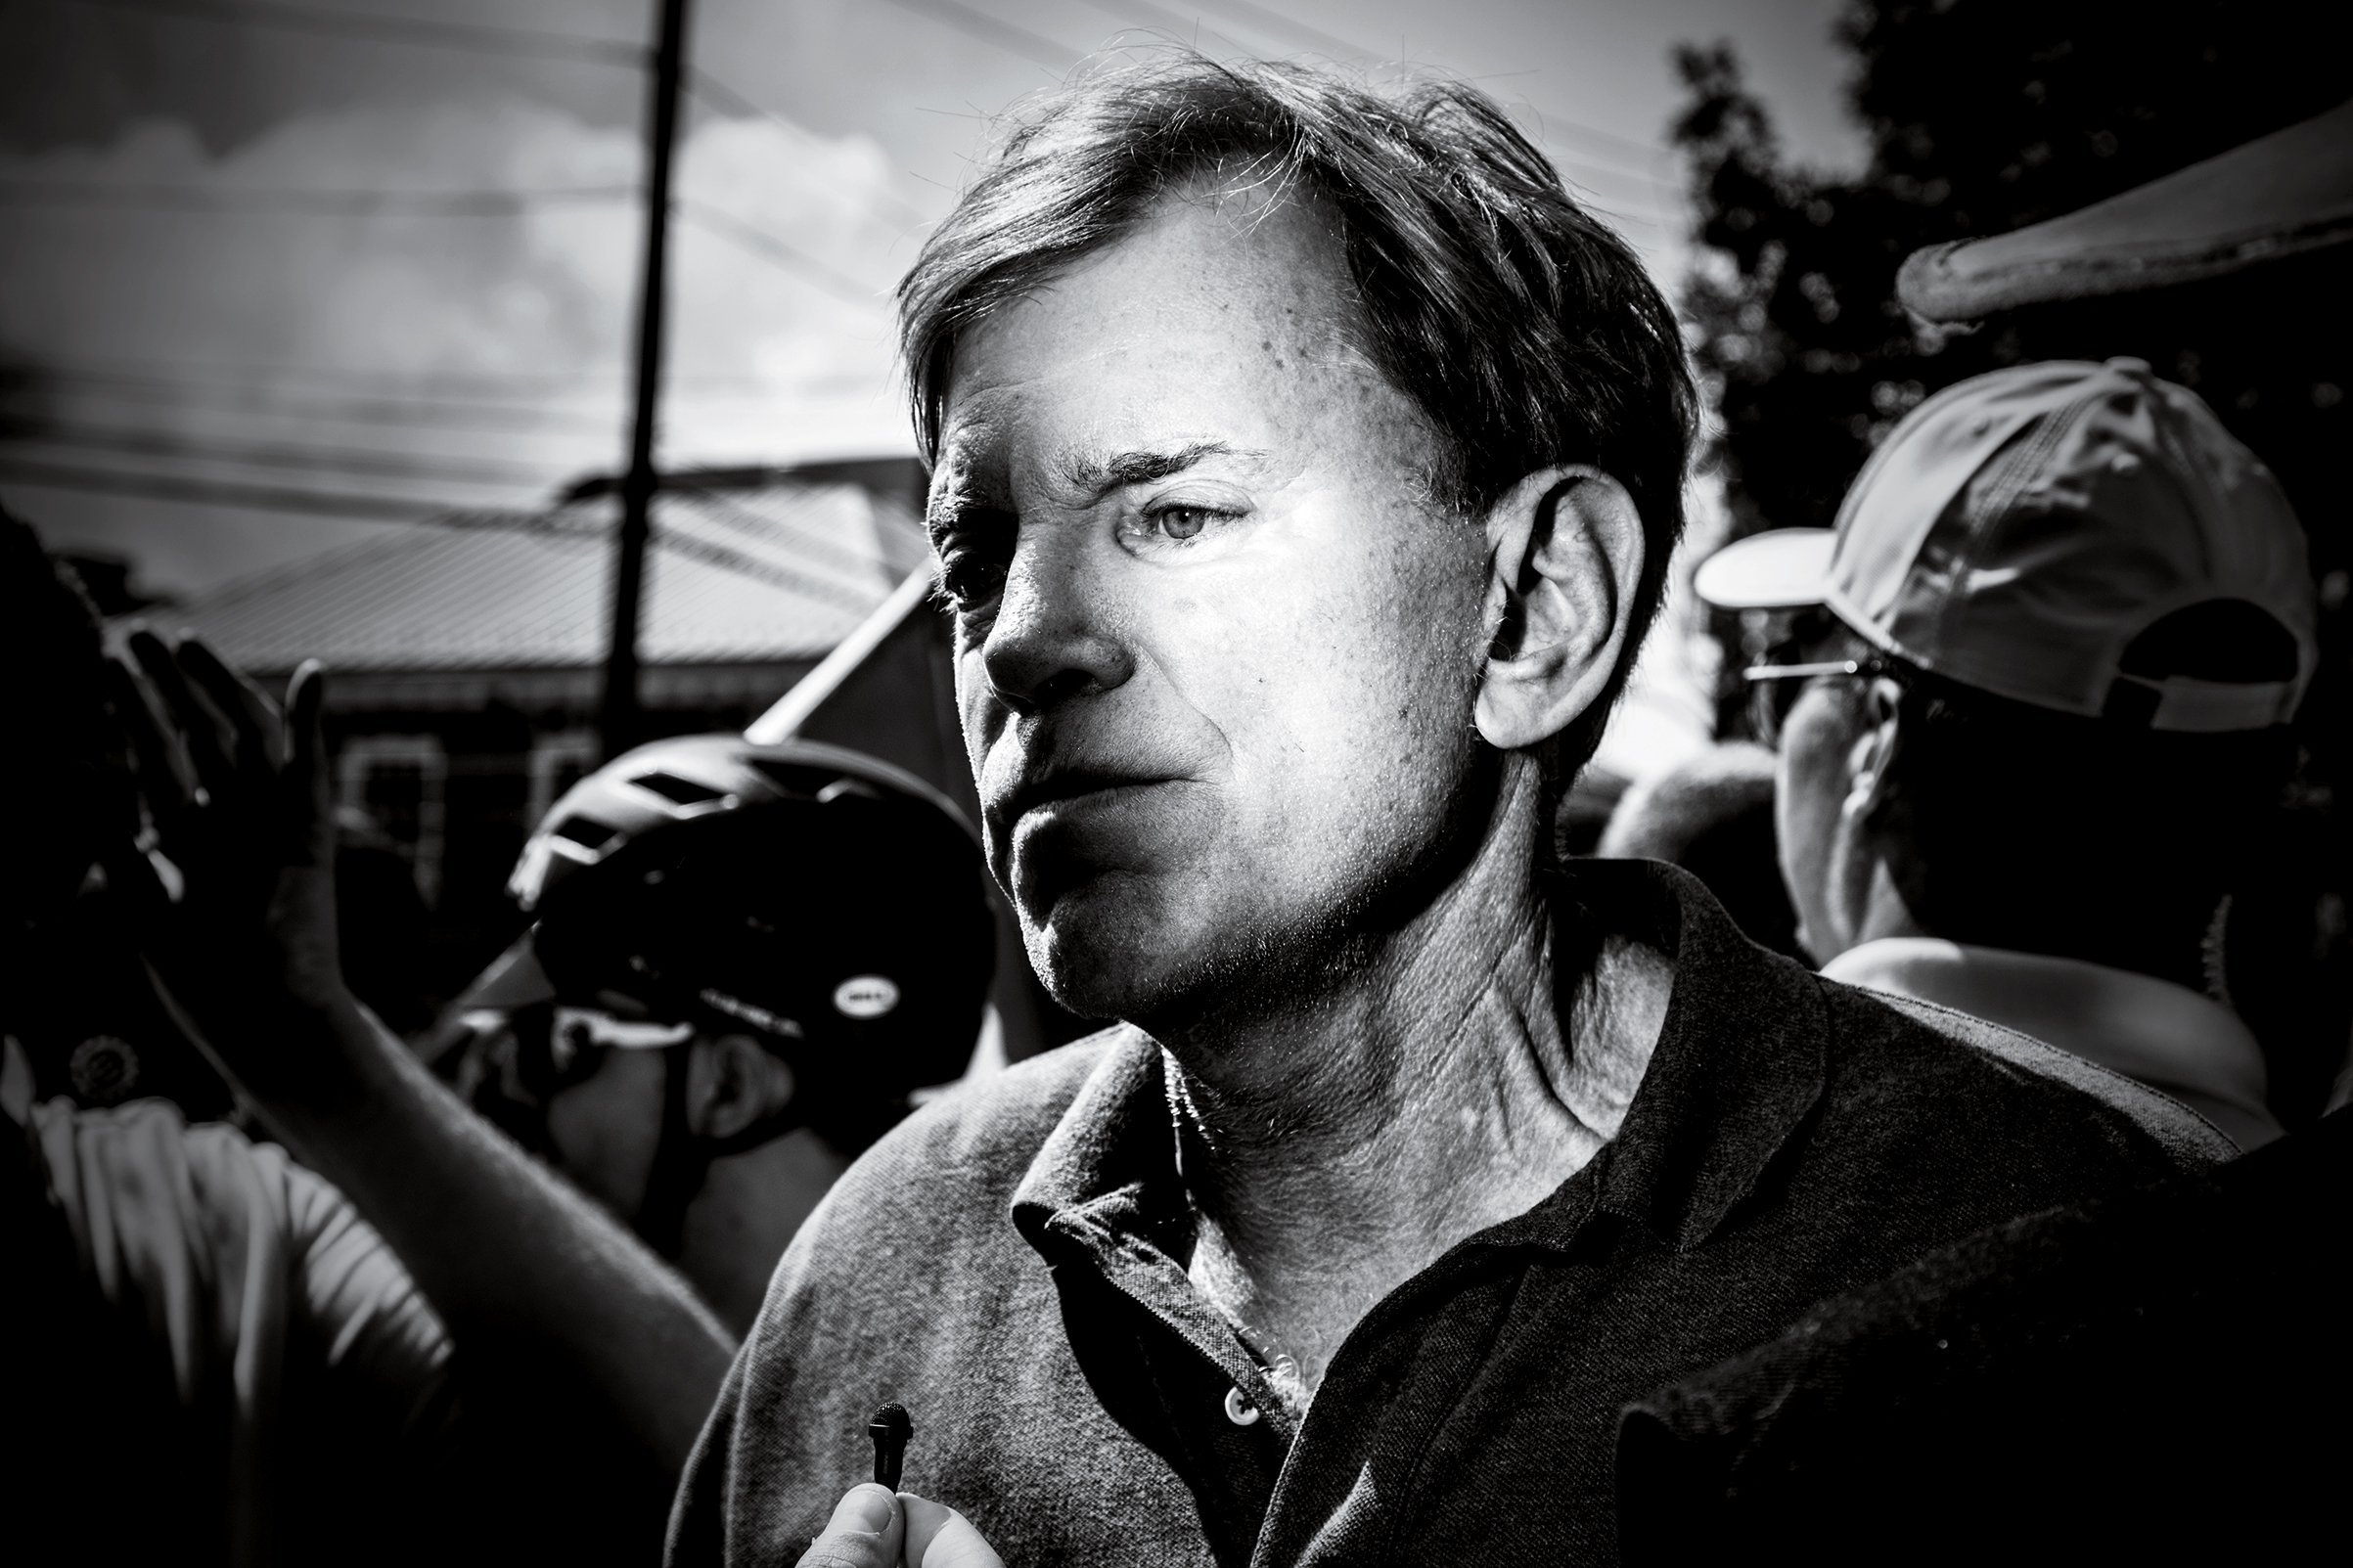 David Duke, the white nationalist and former KKK Grand Wizard, at the Unite the Right rally on Aug. 12